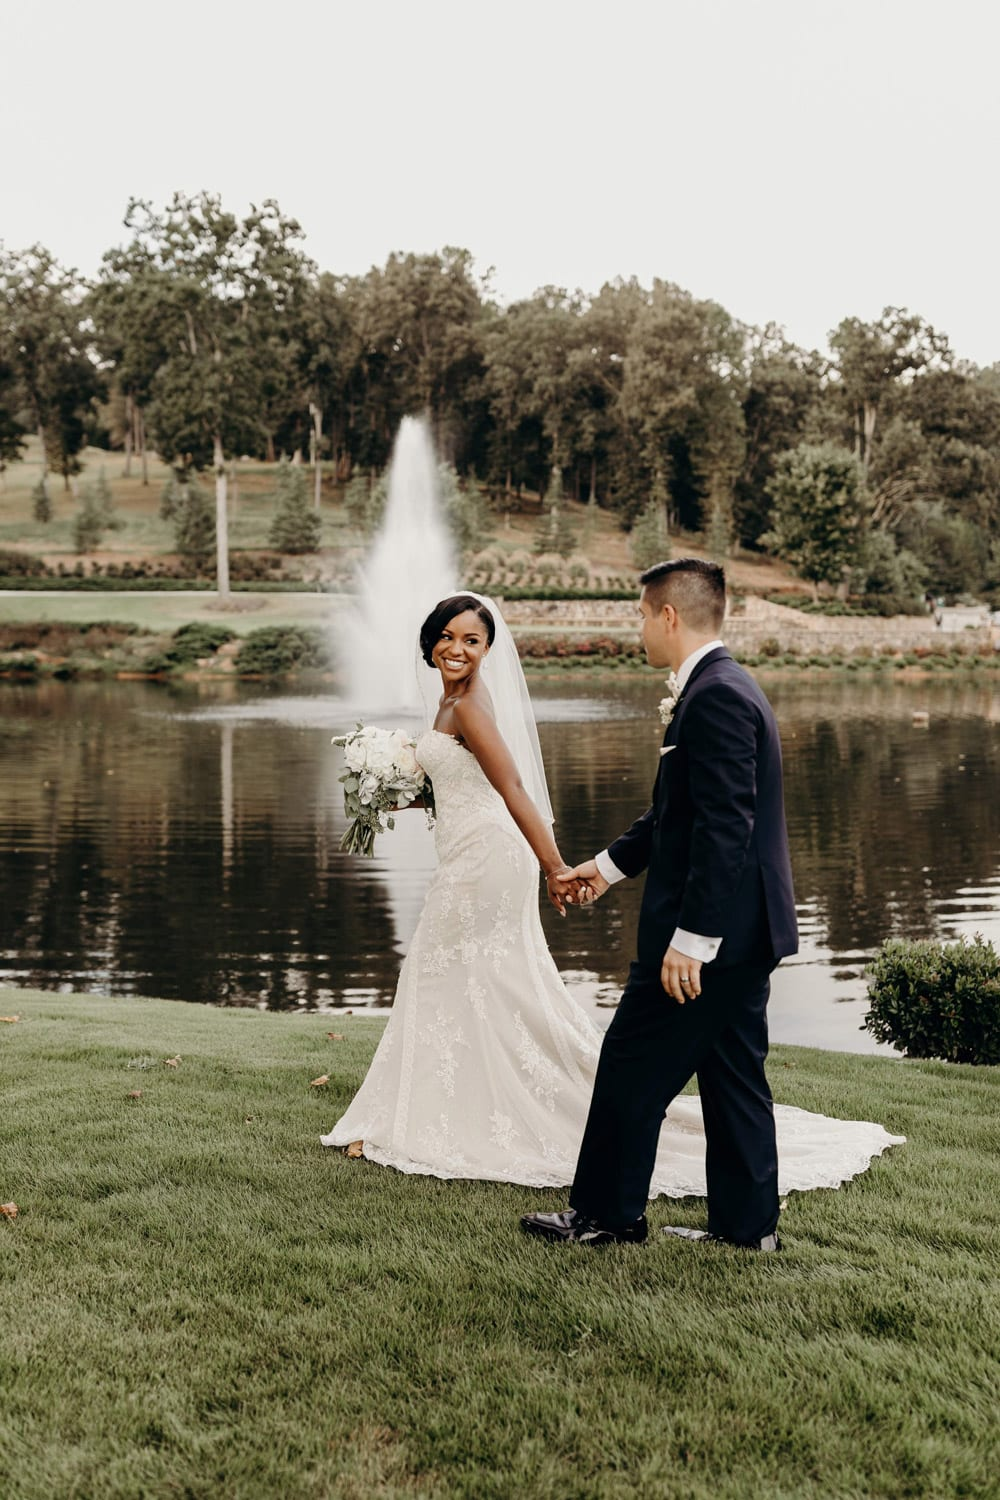 Bride leads groom by the hand in front of fountain